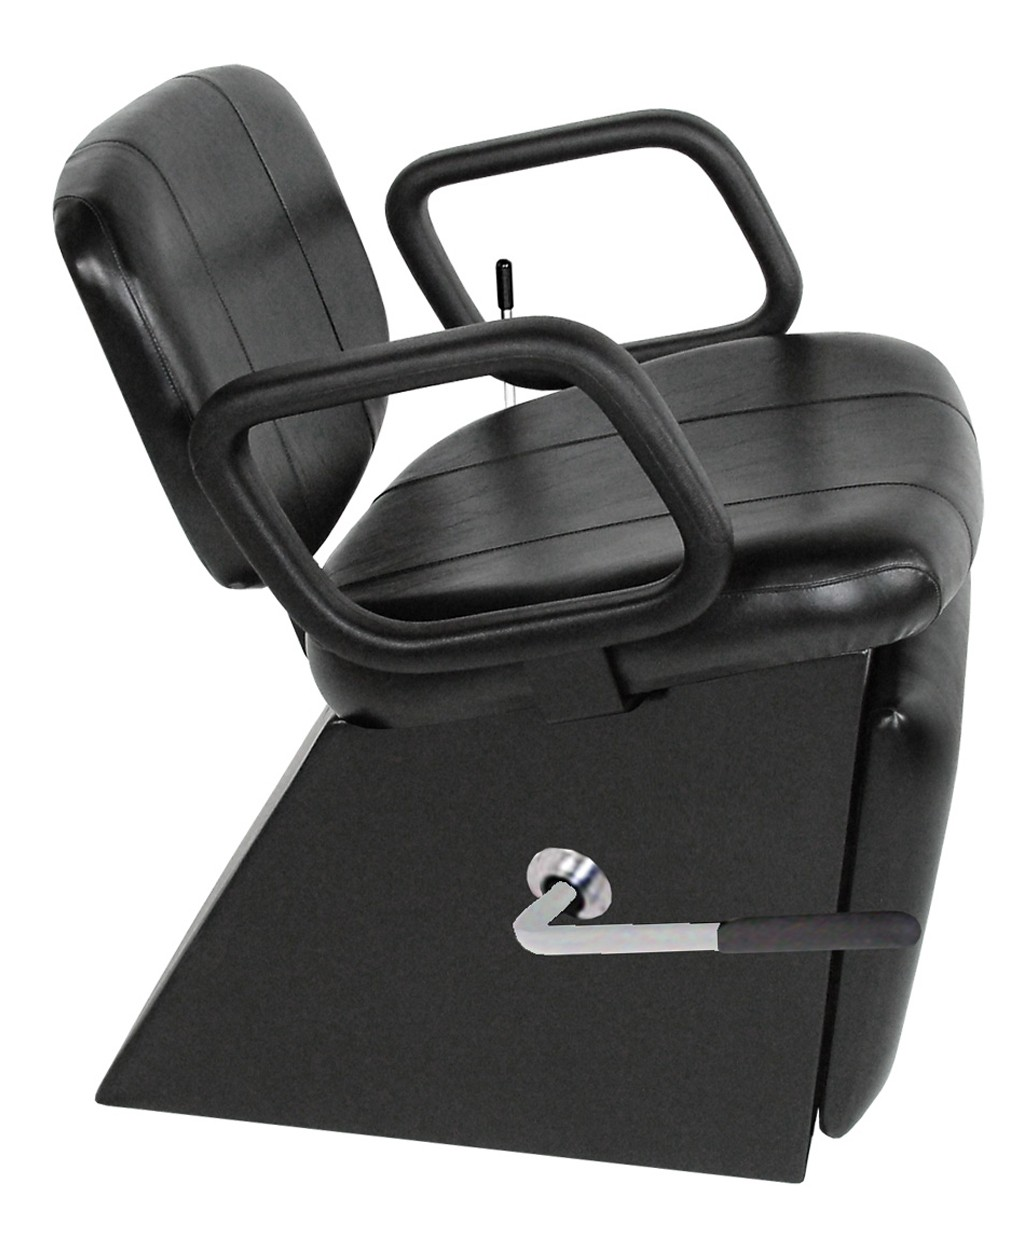 Collins 3750L Cody Shampoo Chair with Kick Out Leg Rest